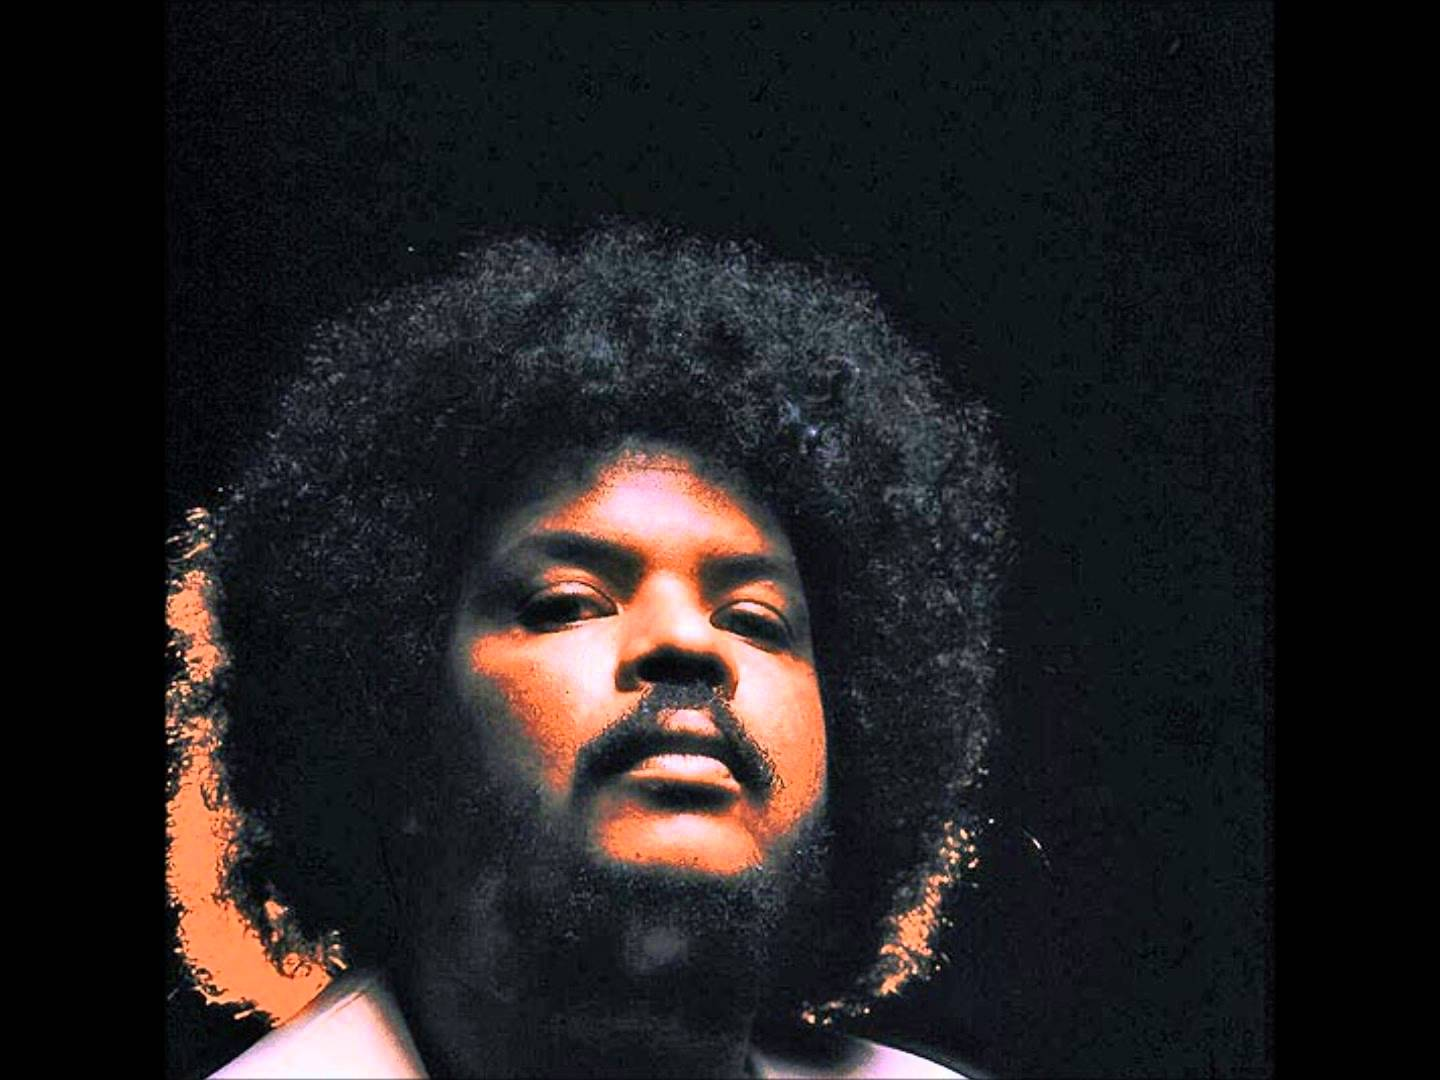 Sebastião Rodrigues Maia, popularly known as Tim Maia.